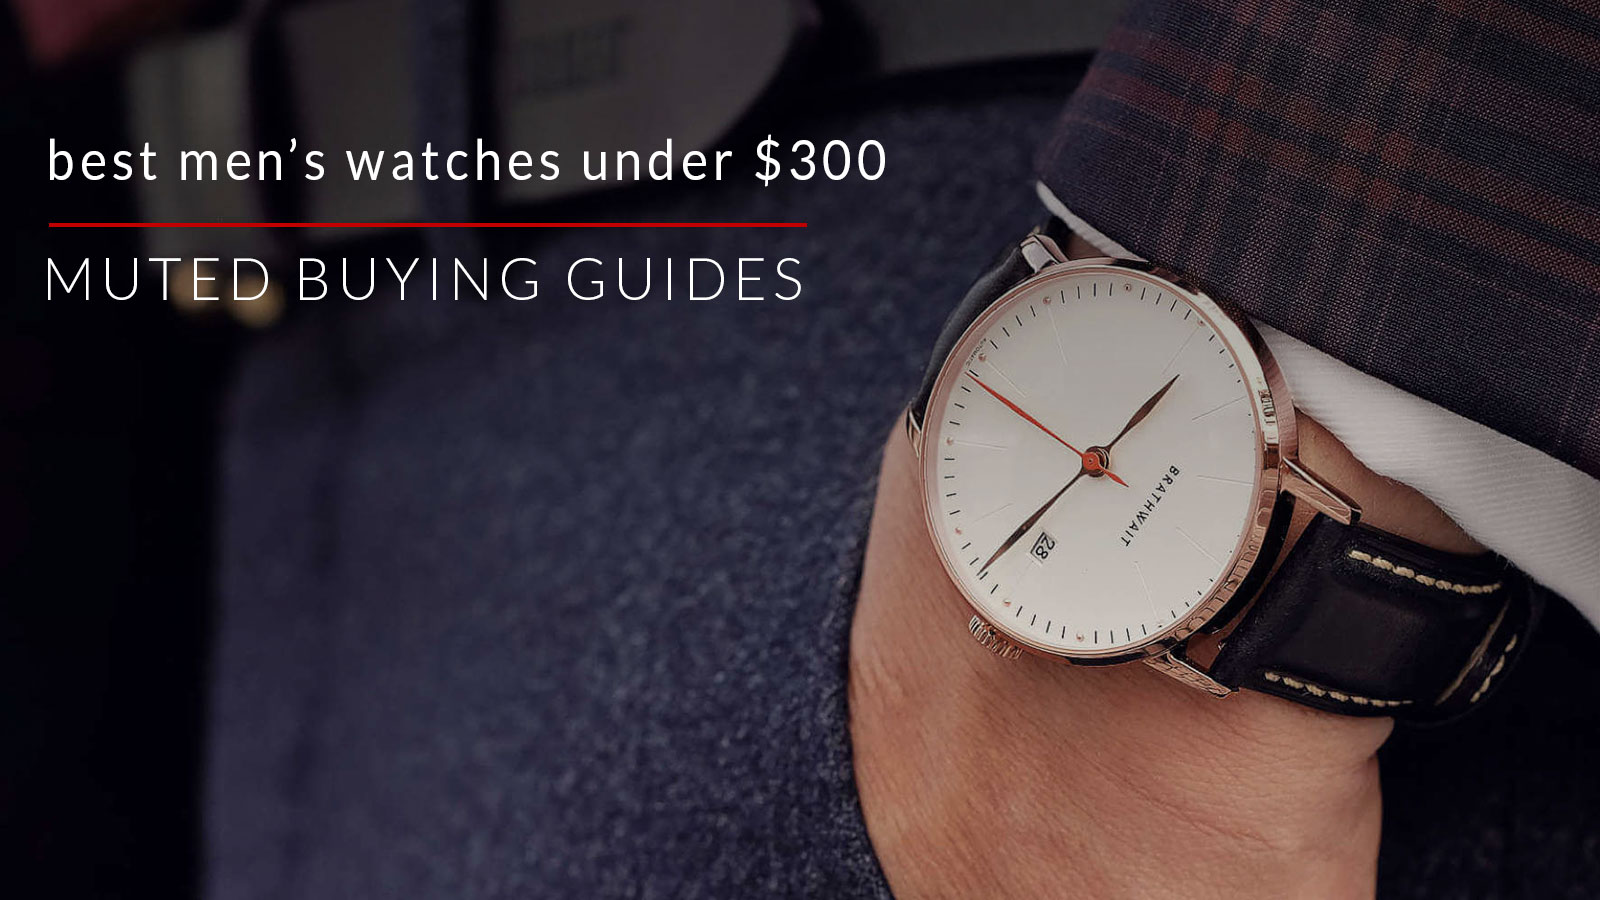 best men's watches under $300